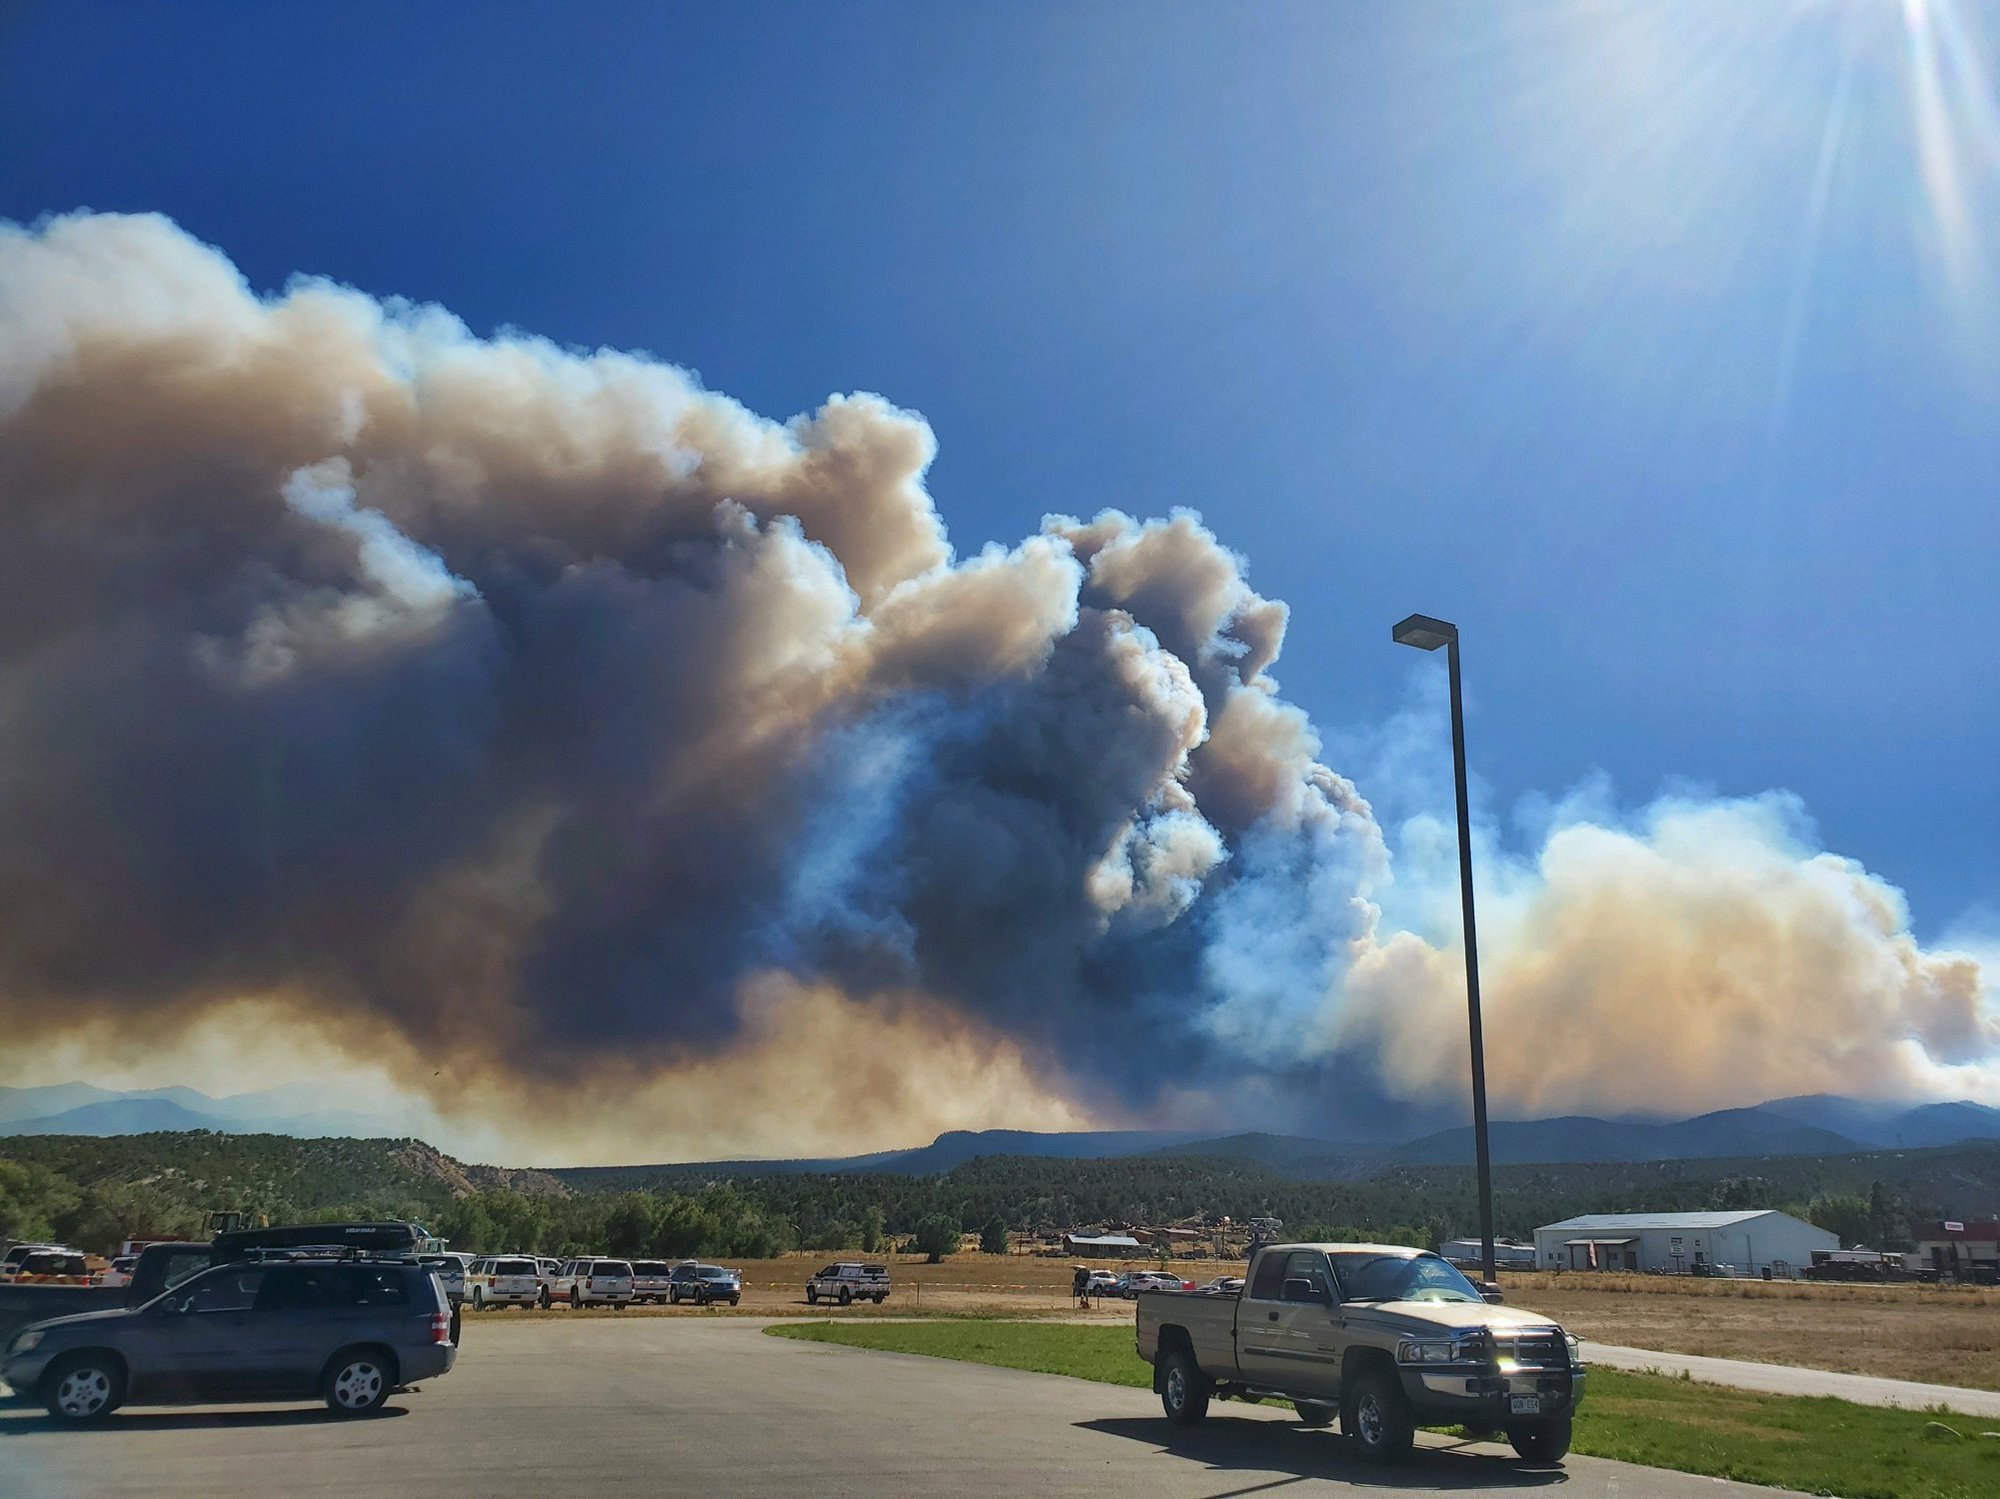 Firefighters battle 6,000-acre blaze in Colorado